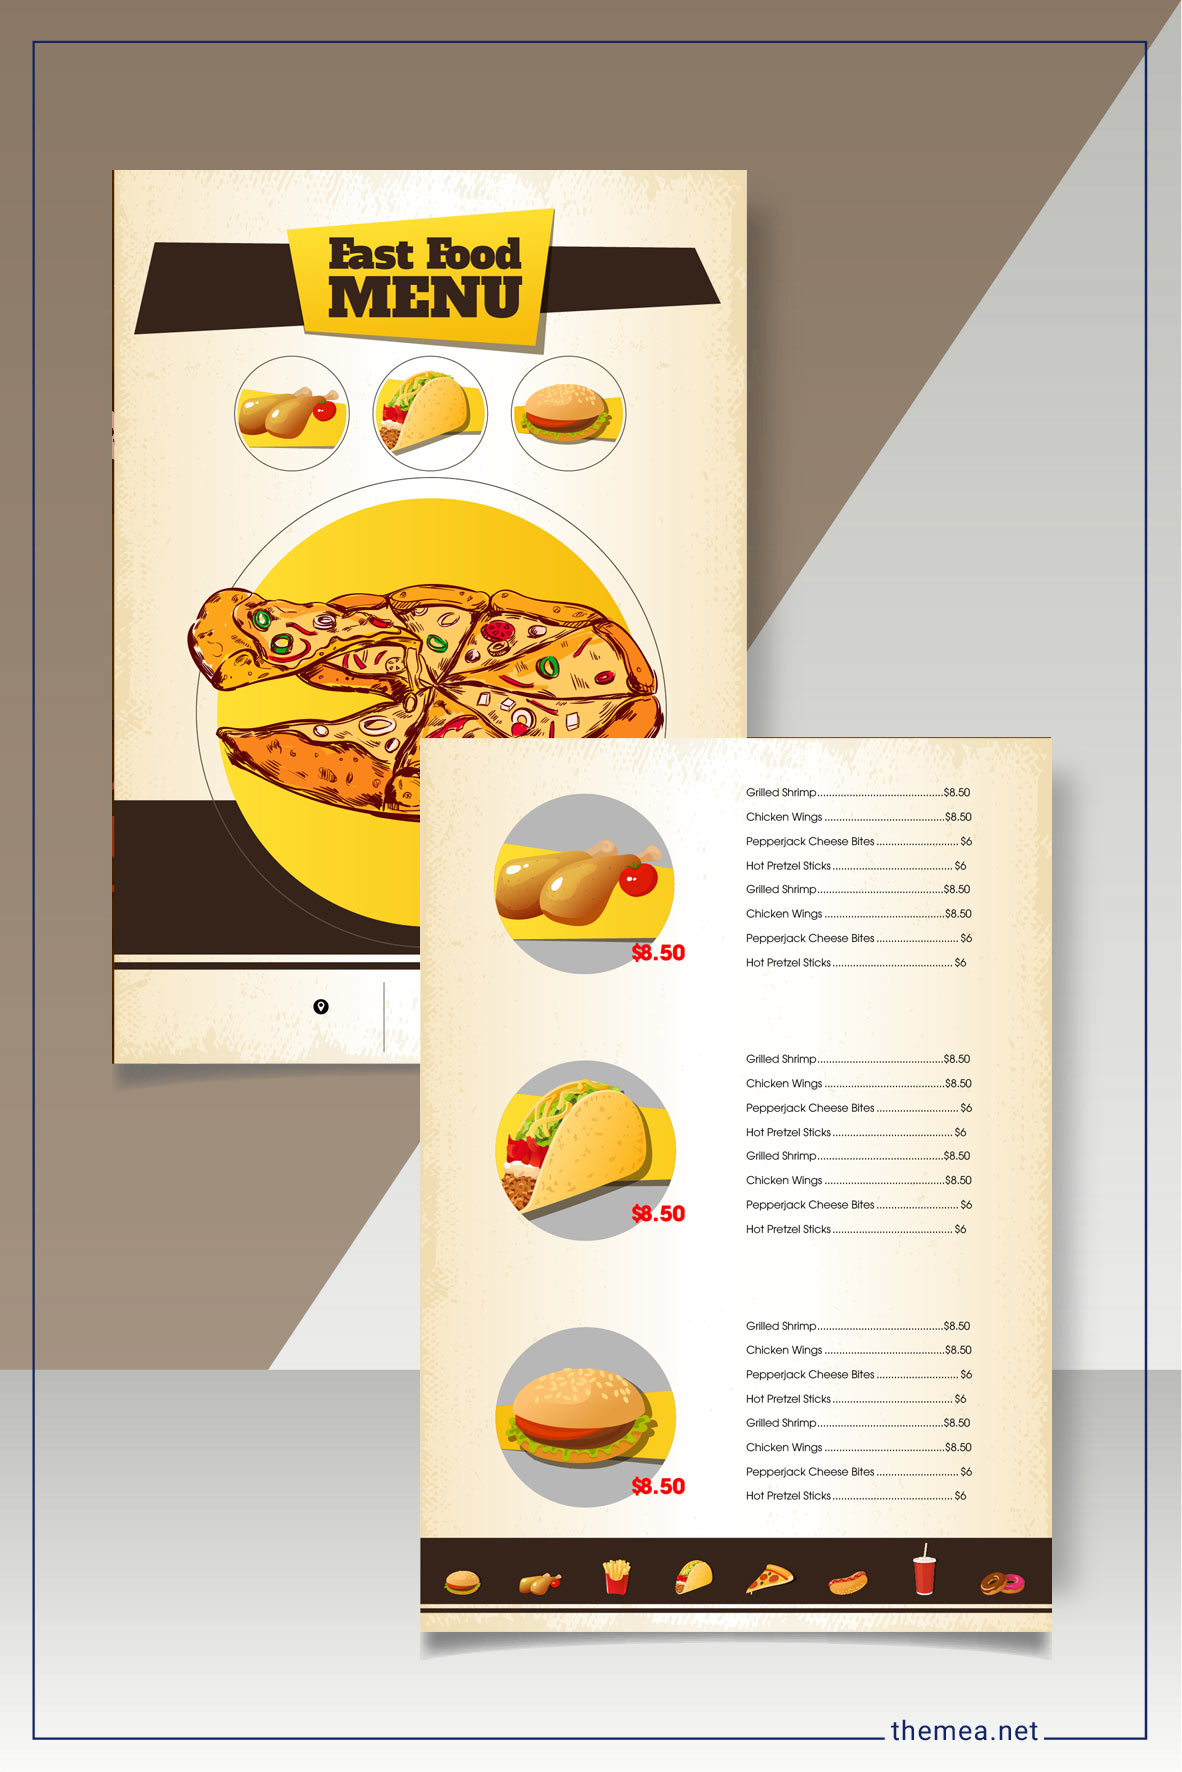 Fast food menu template for restaurant